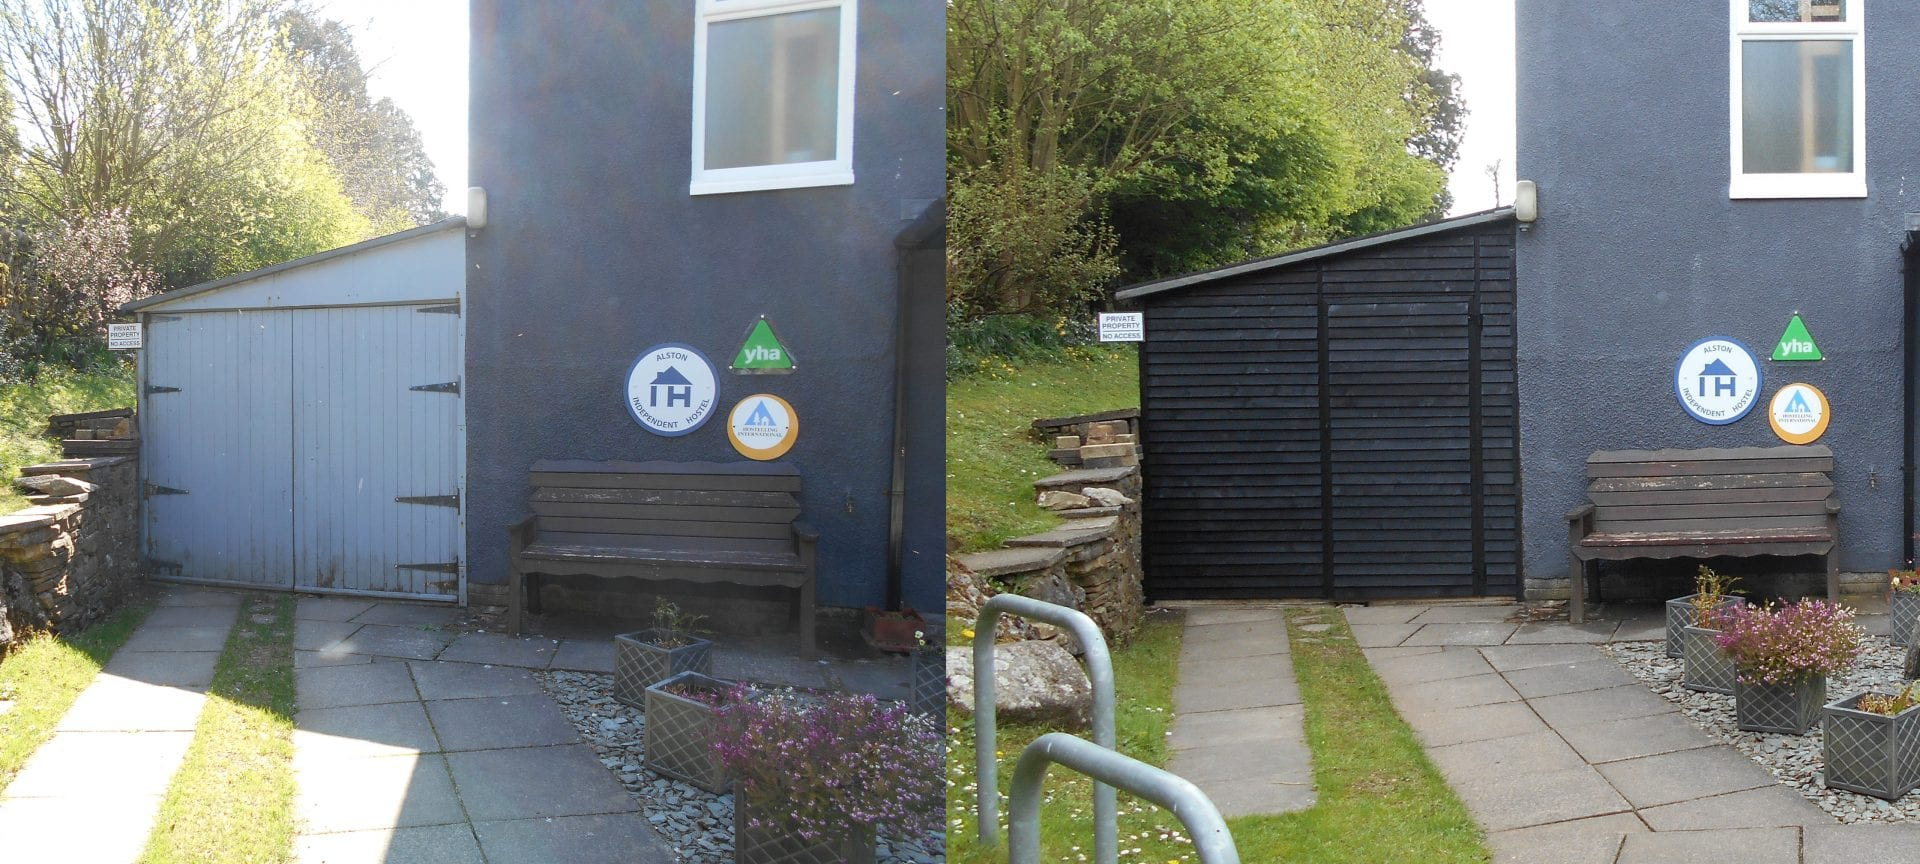 new bike shed at Alston Youth Hostel